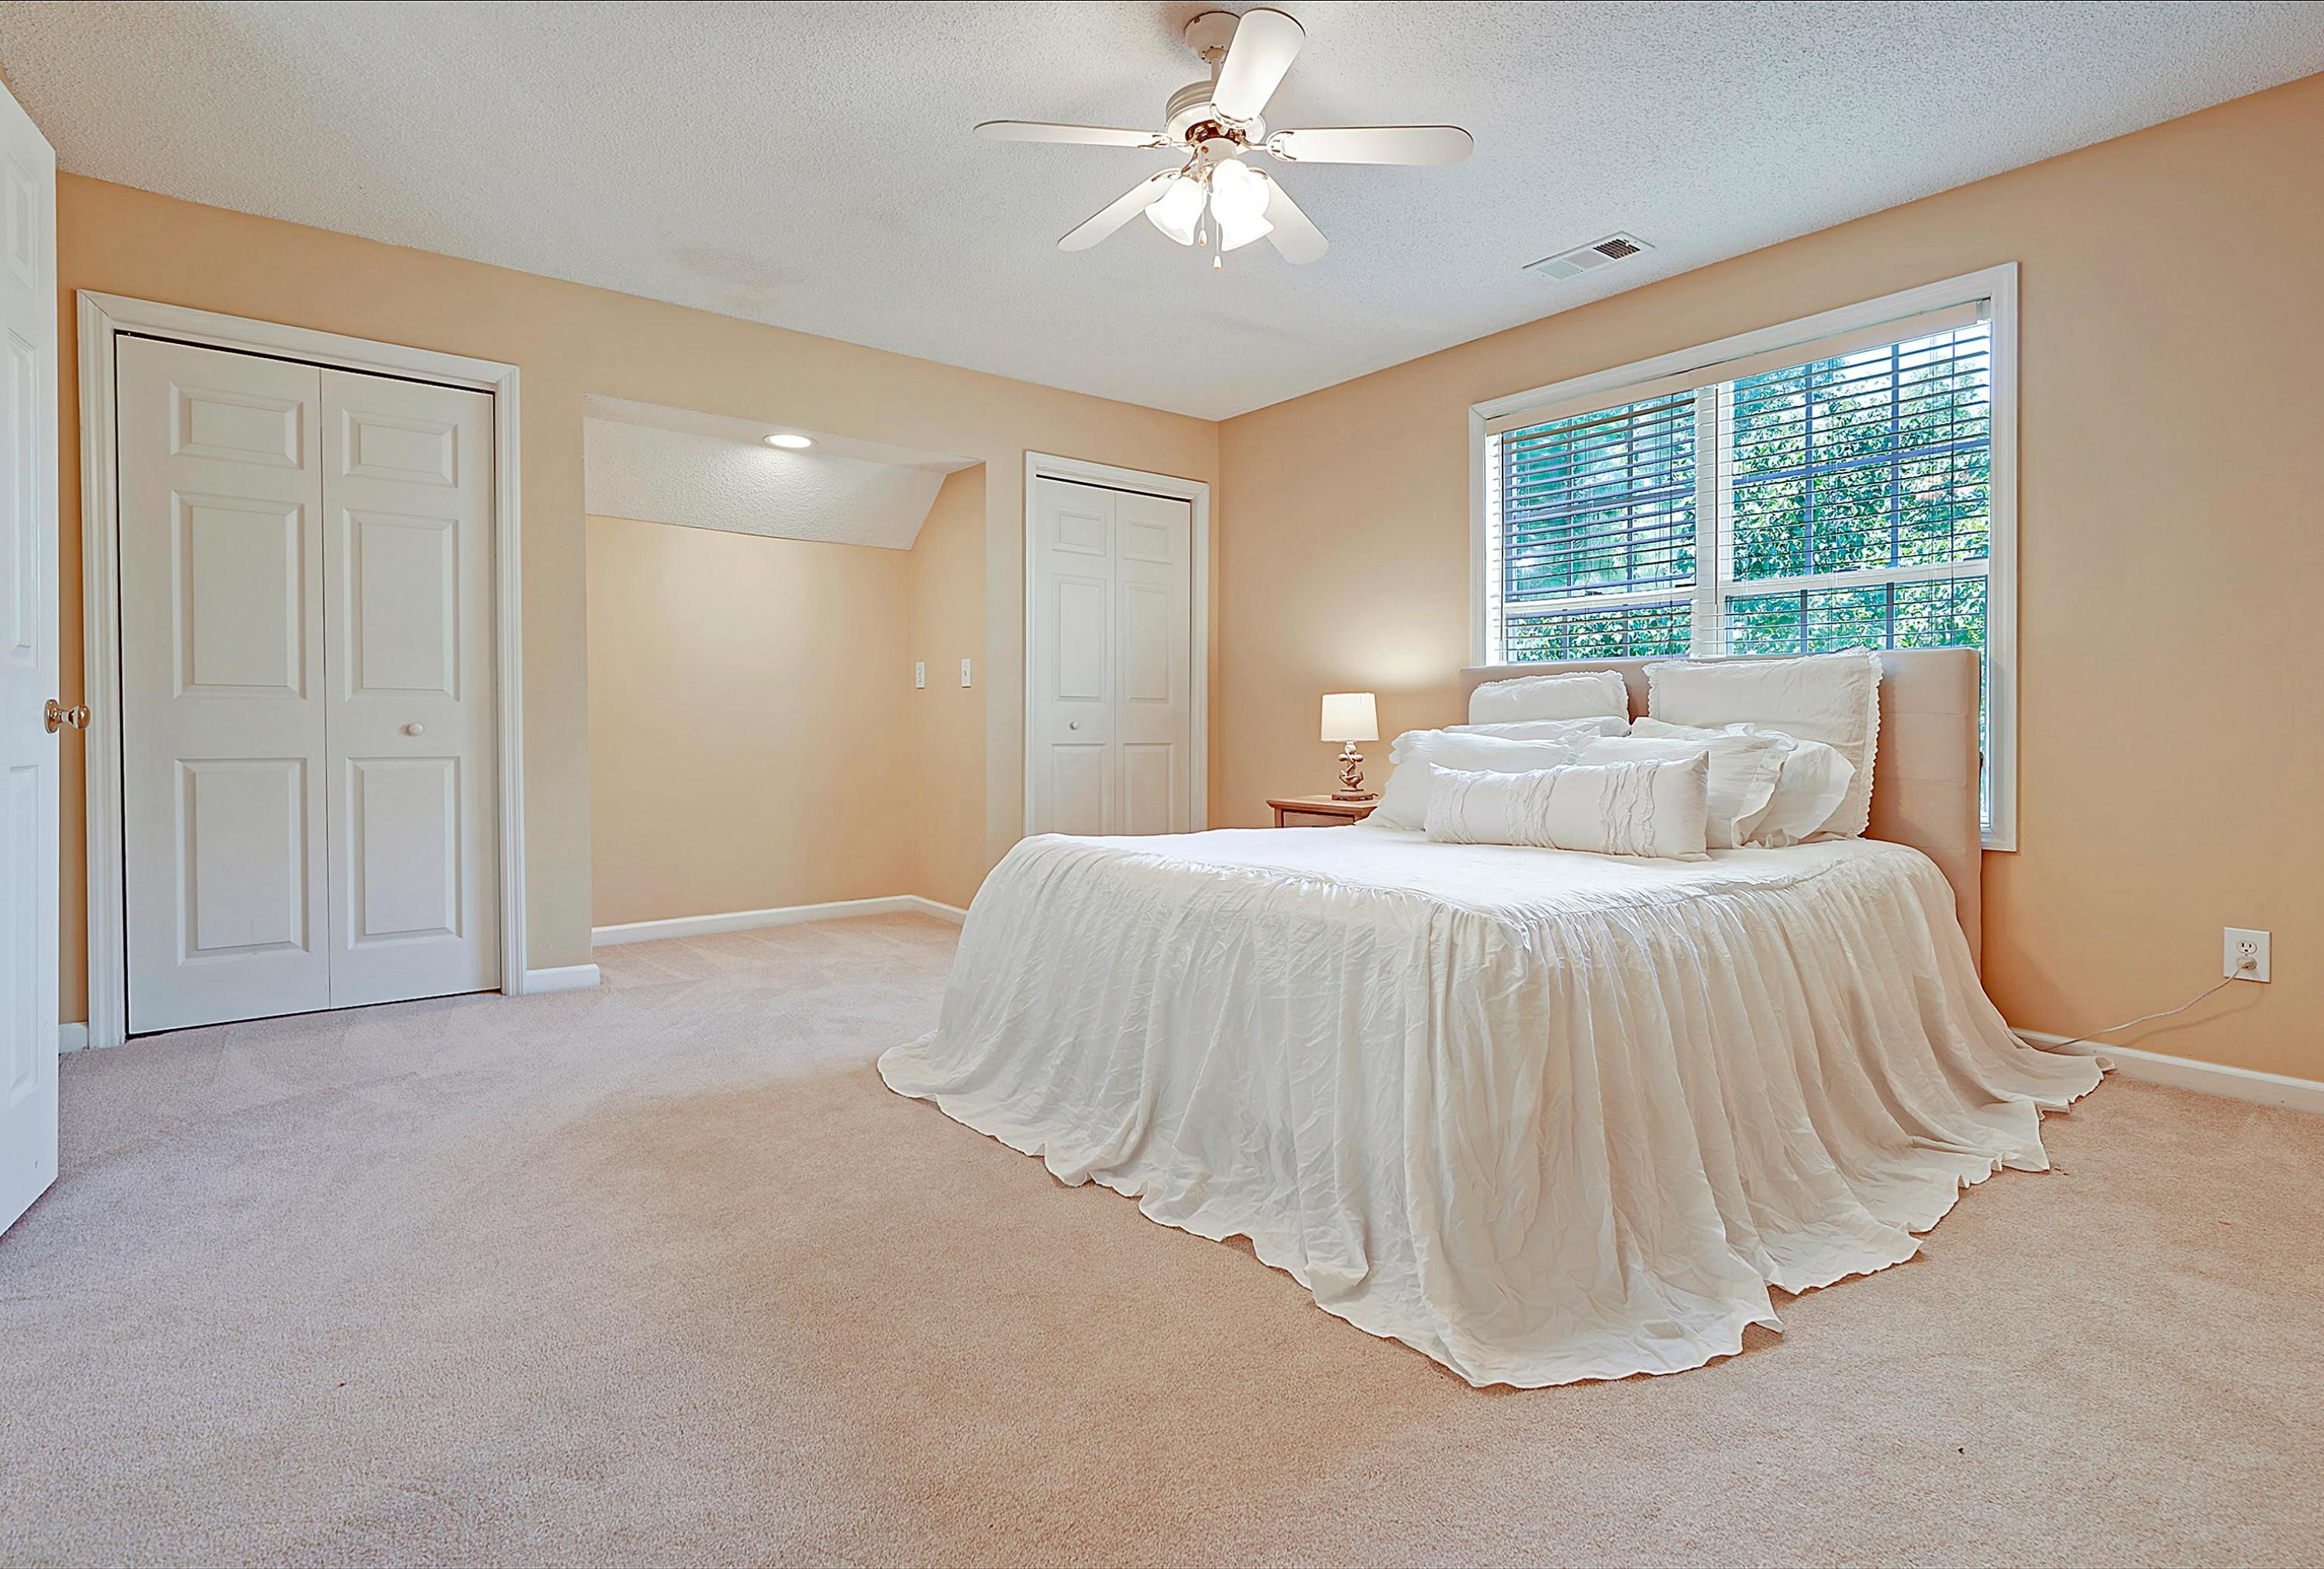 Coosaw Creek Country Club Homes For Sale - 4205 Sawgrass Drive, Charleston, SC - 81